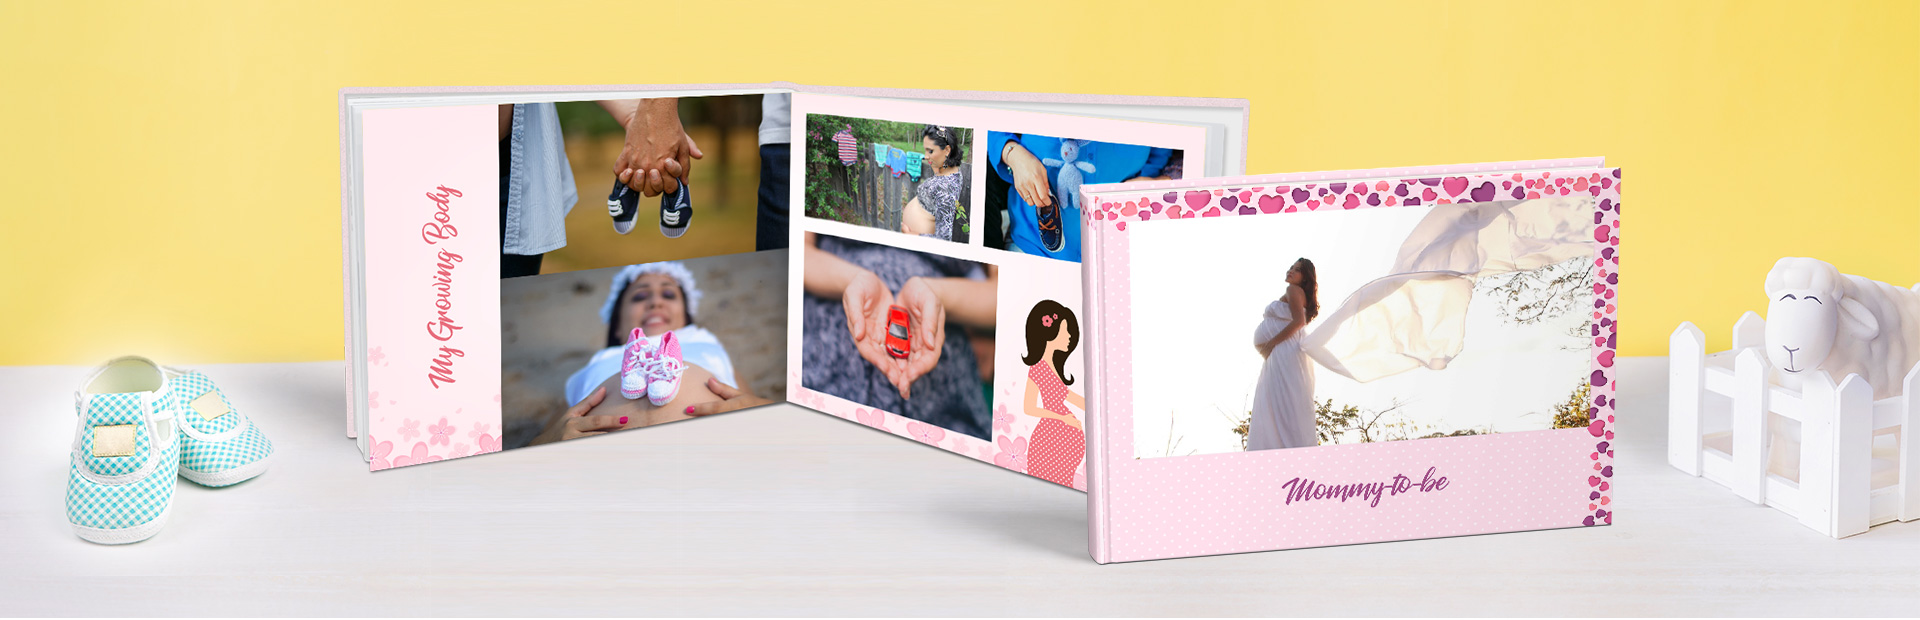 Pre Maternity Custom Photo Books